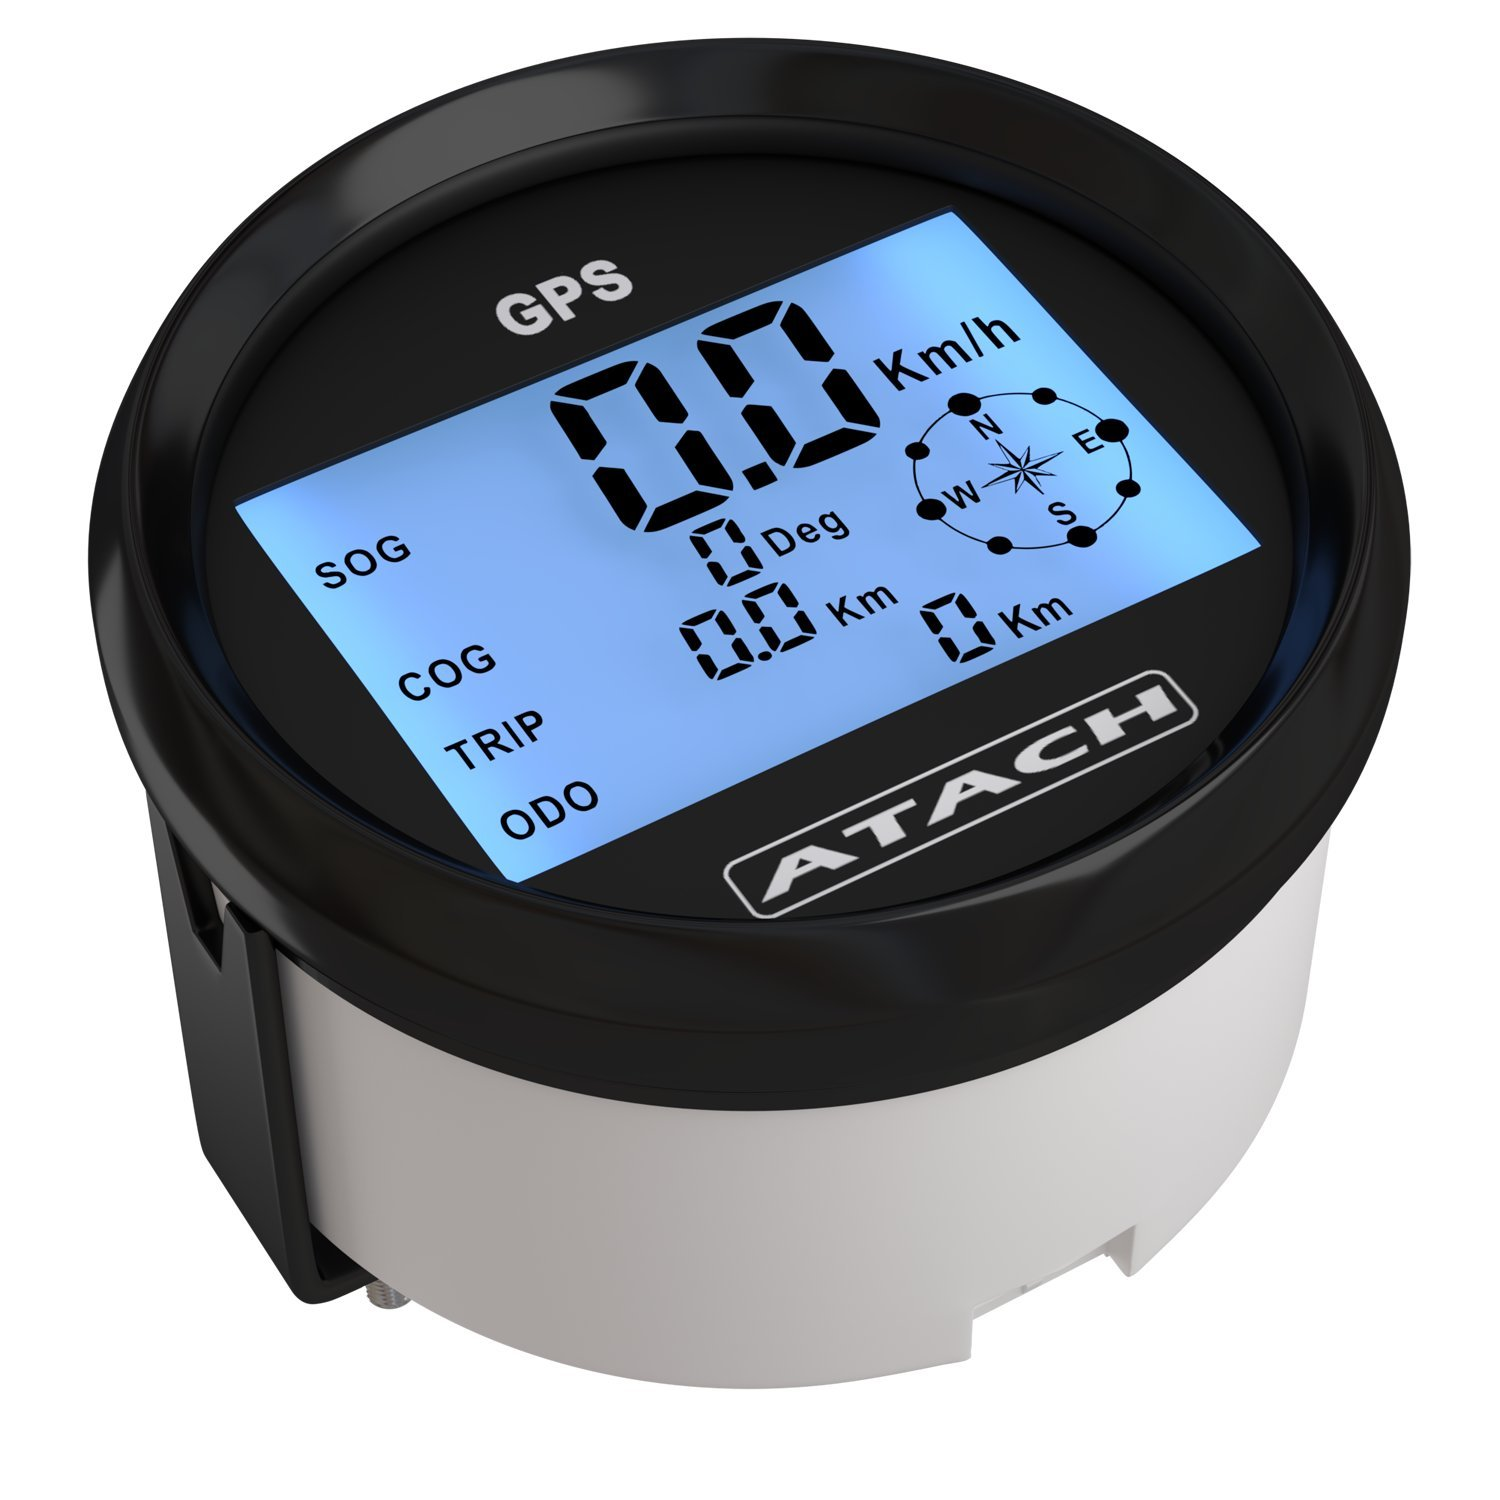 AndyTach 3-3/8'' ATACH DIGITAL GPS speedometer with high speed recall (BLACK/BLACK BEZEL) by AndyTach (Image #1)